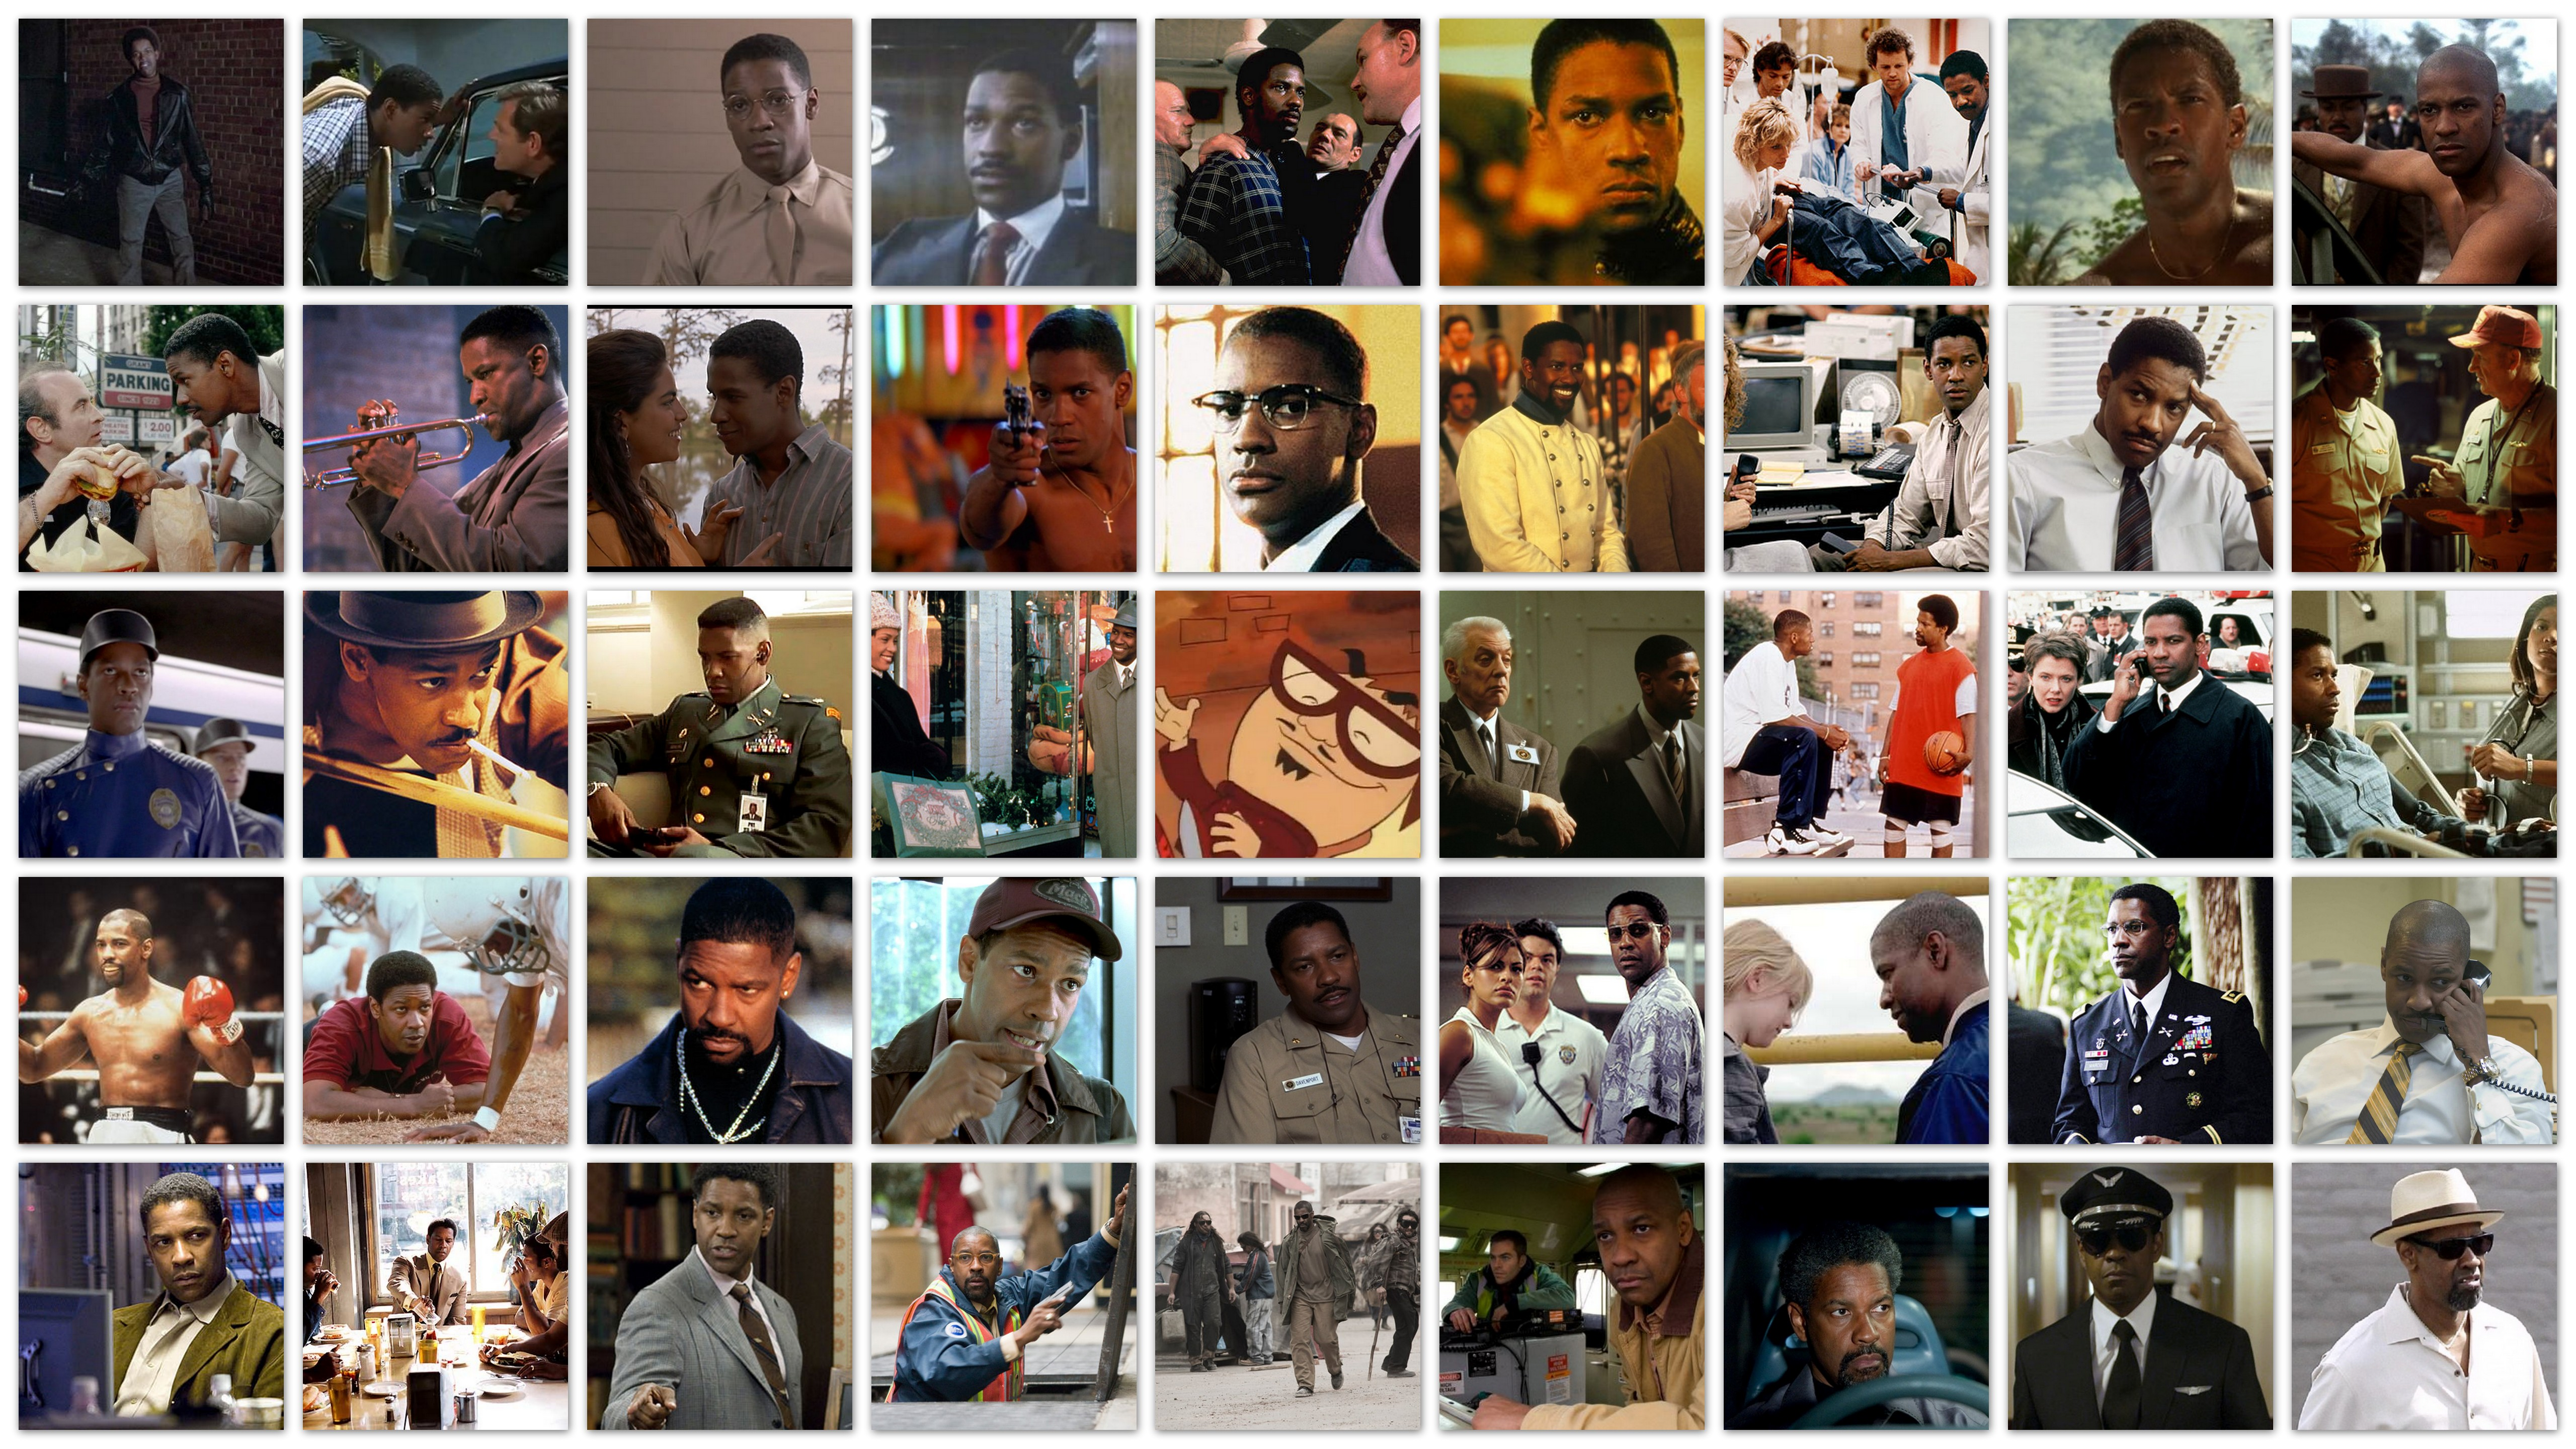 overview roles Denzel Washington